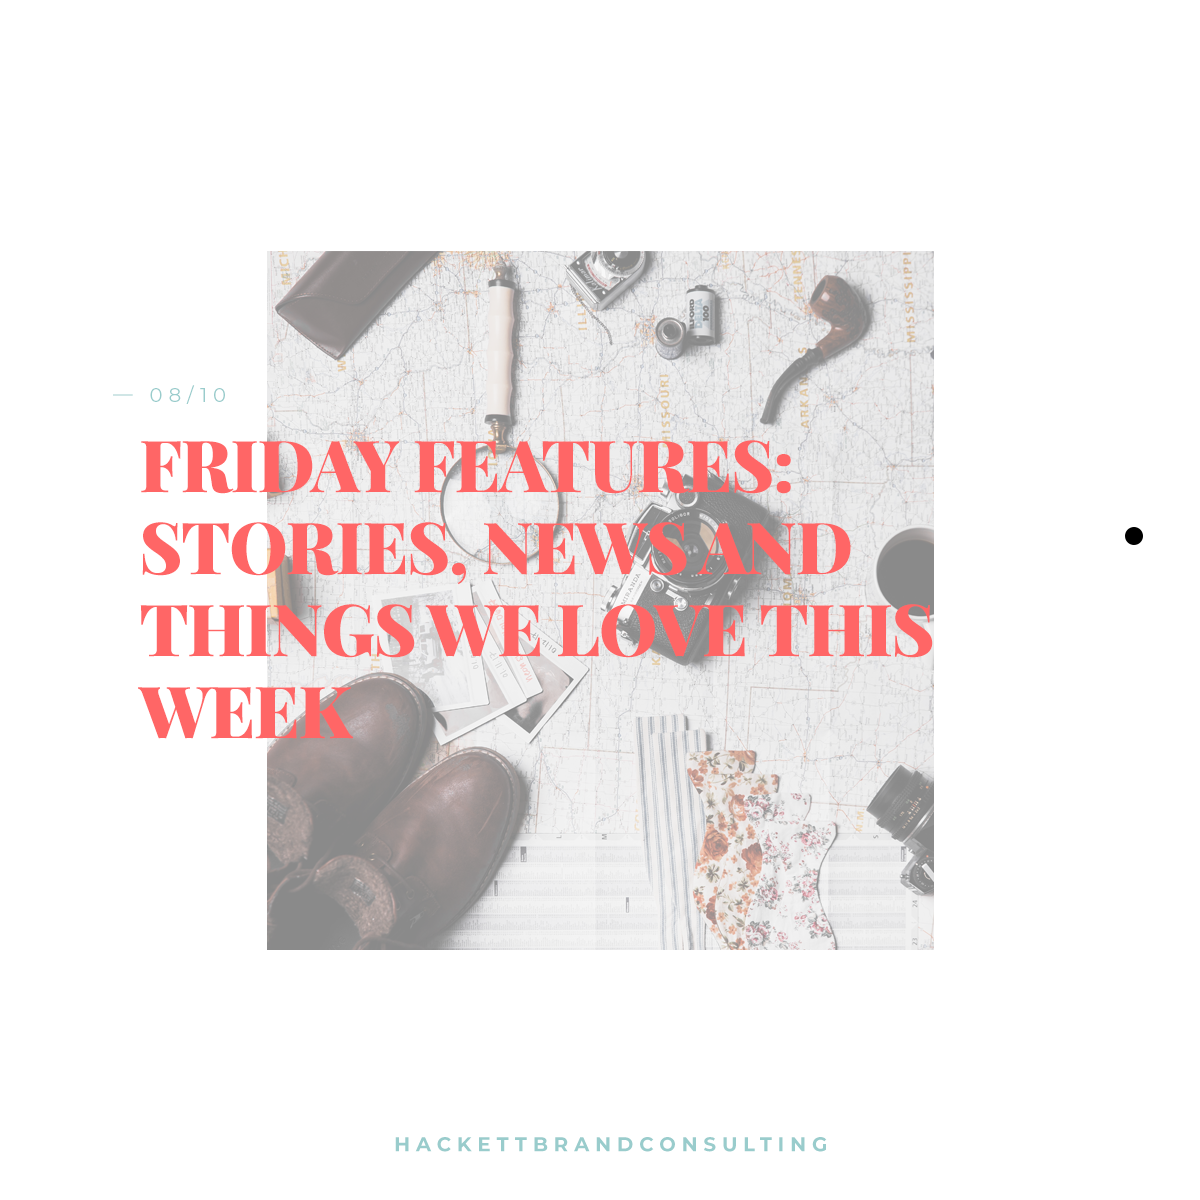 FRIDAYFEATURES.png